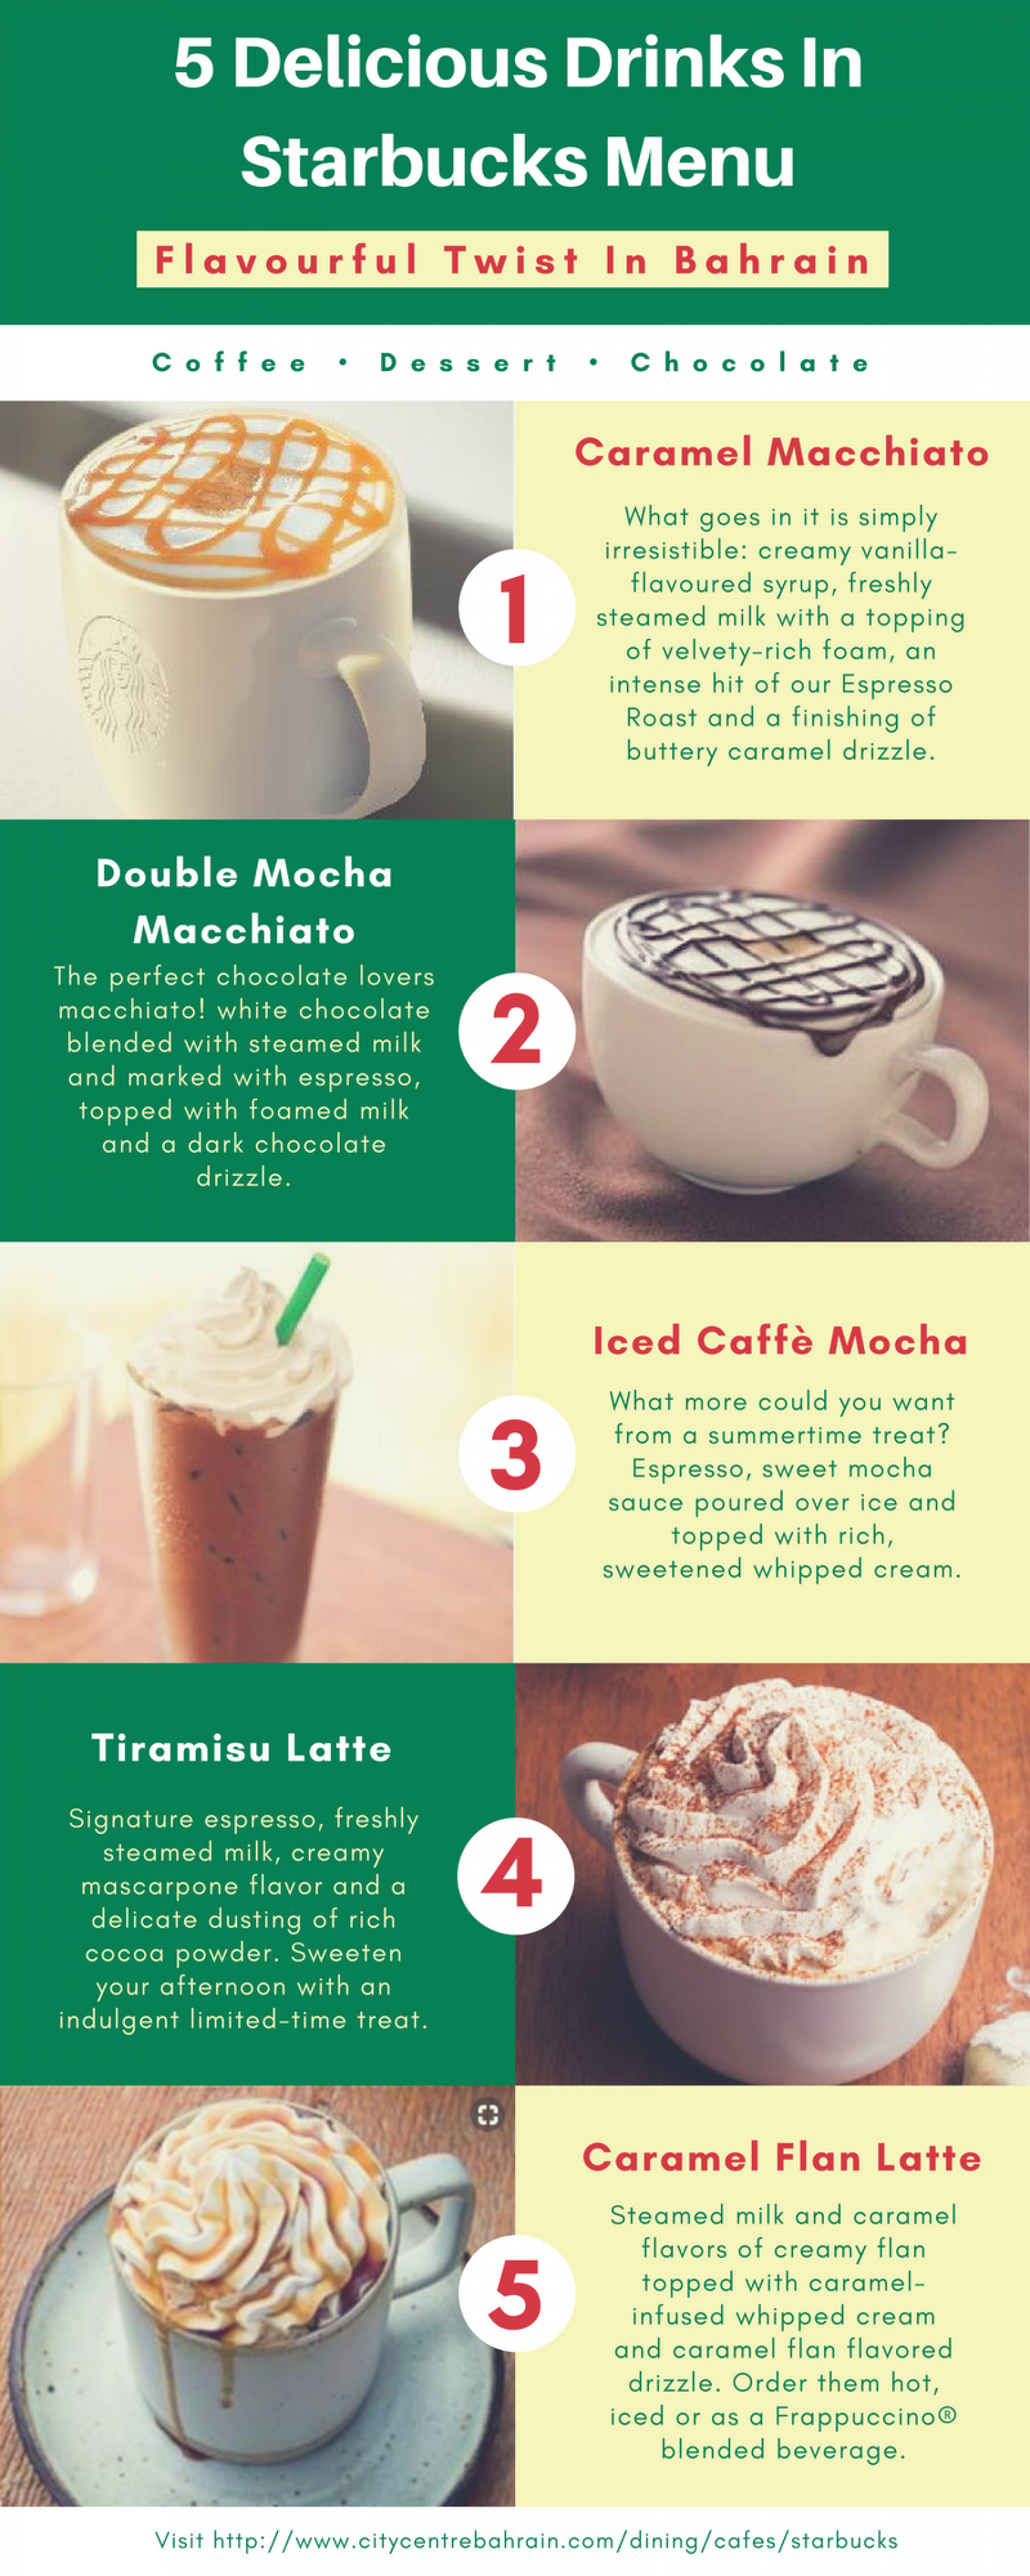 5 Delicious Drinks to Try in Starbucks - Bahrain Infographic